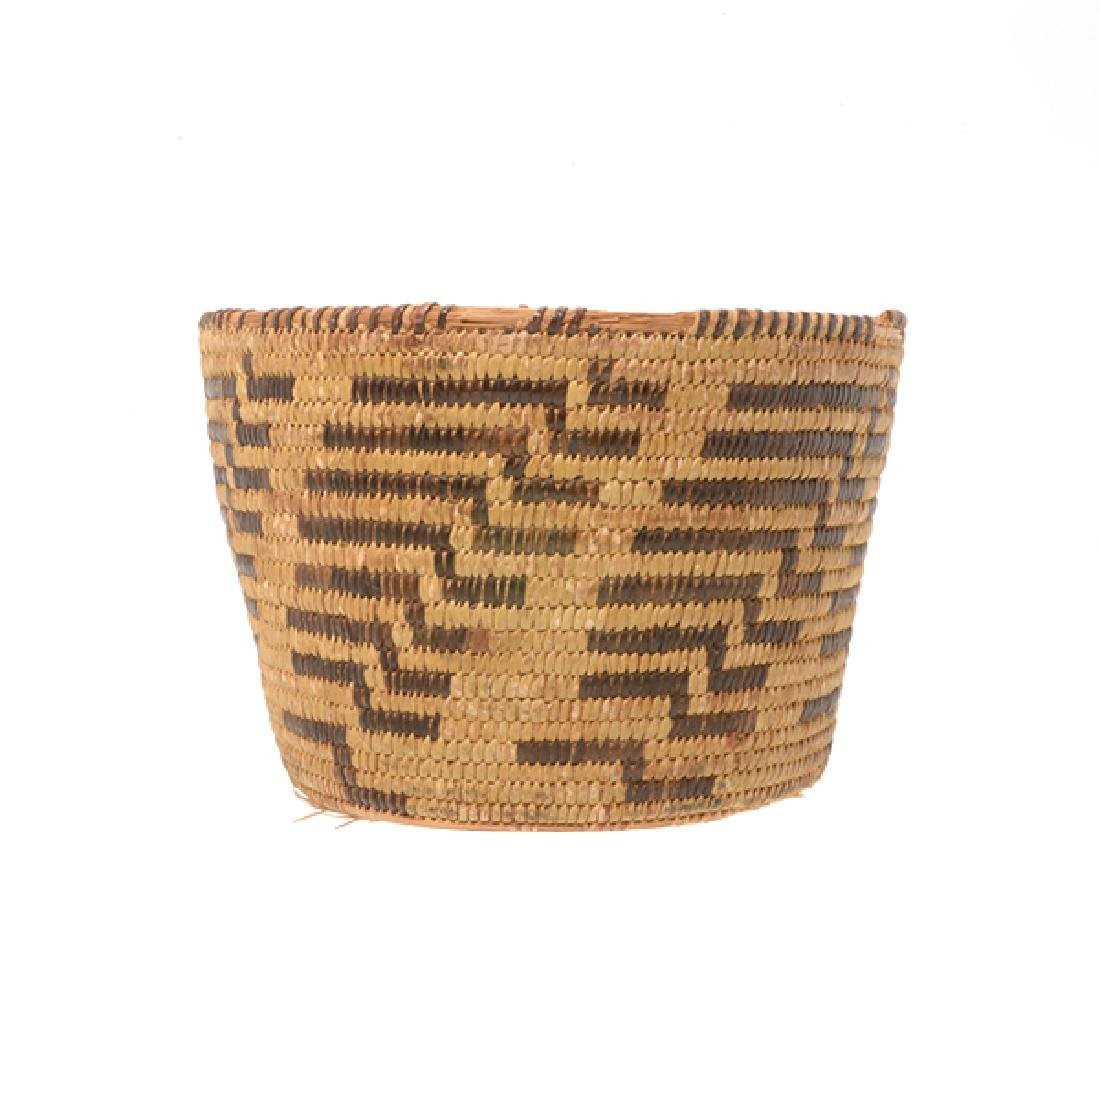 Three Native American Hand Woven Baskets - 4